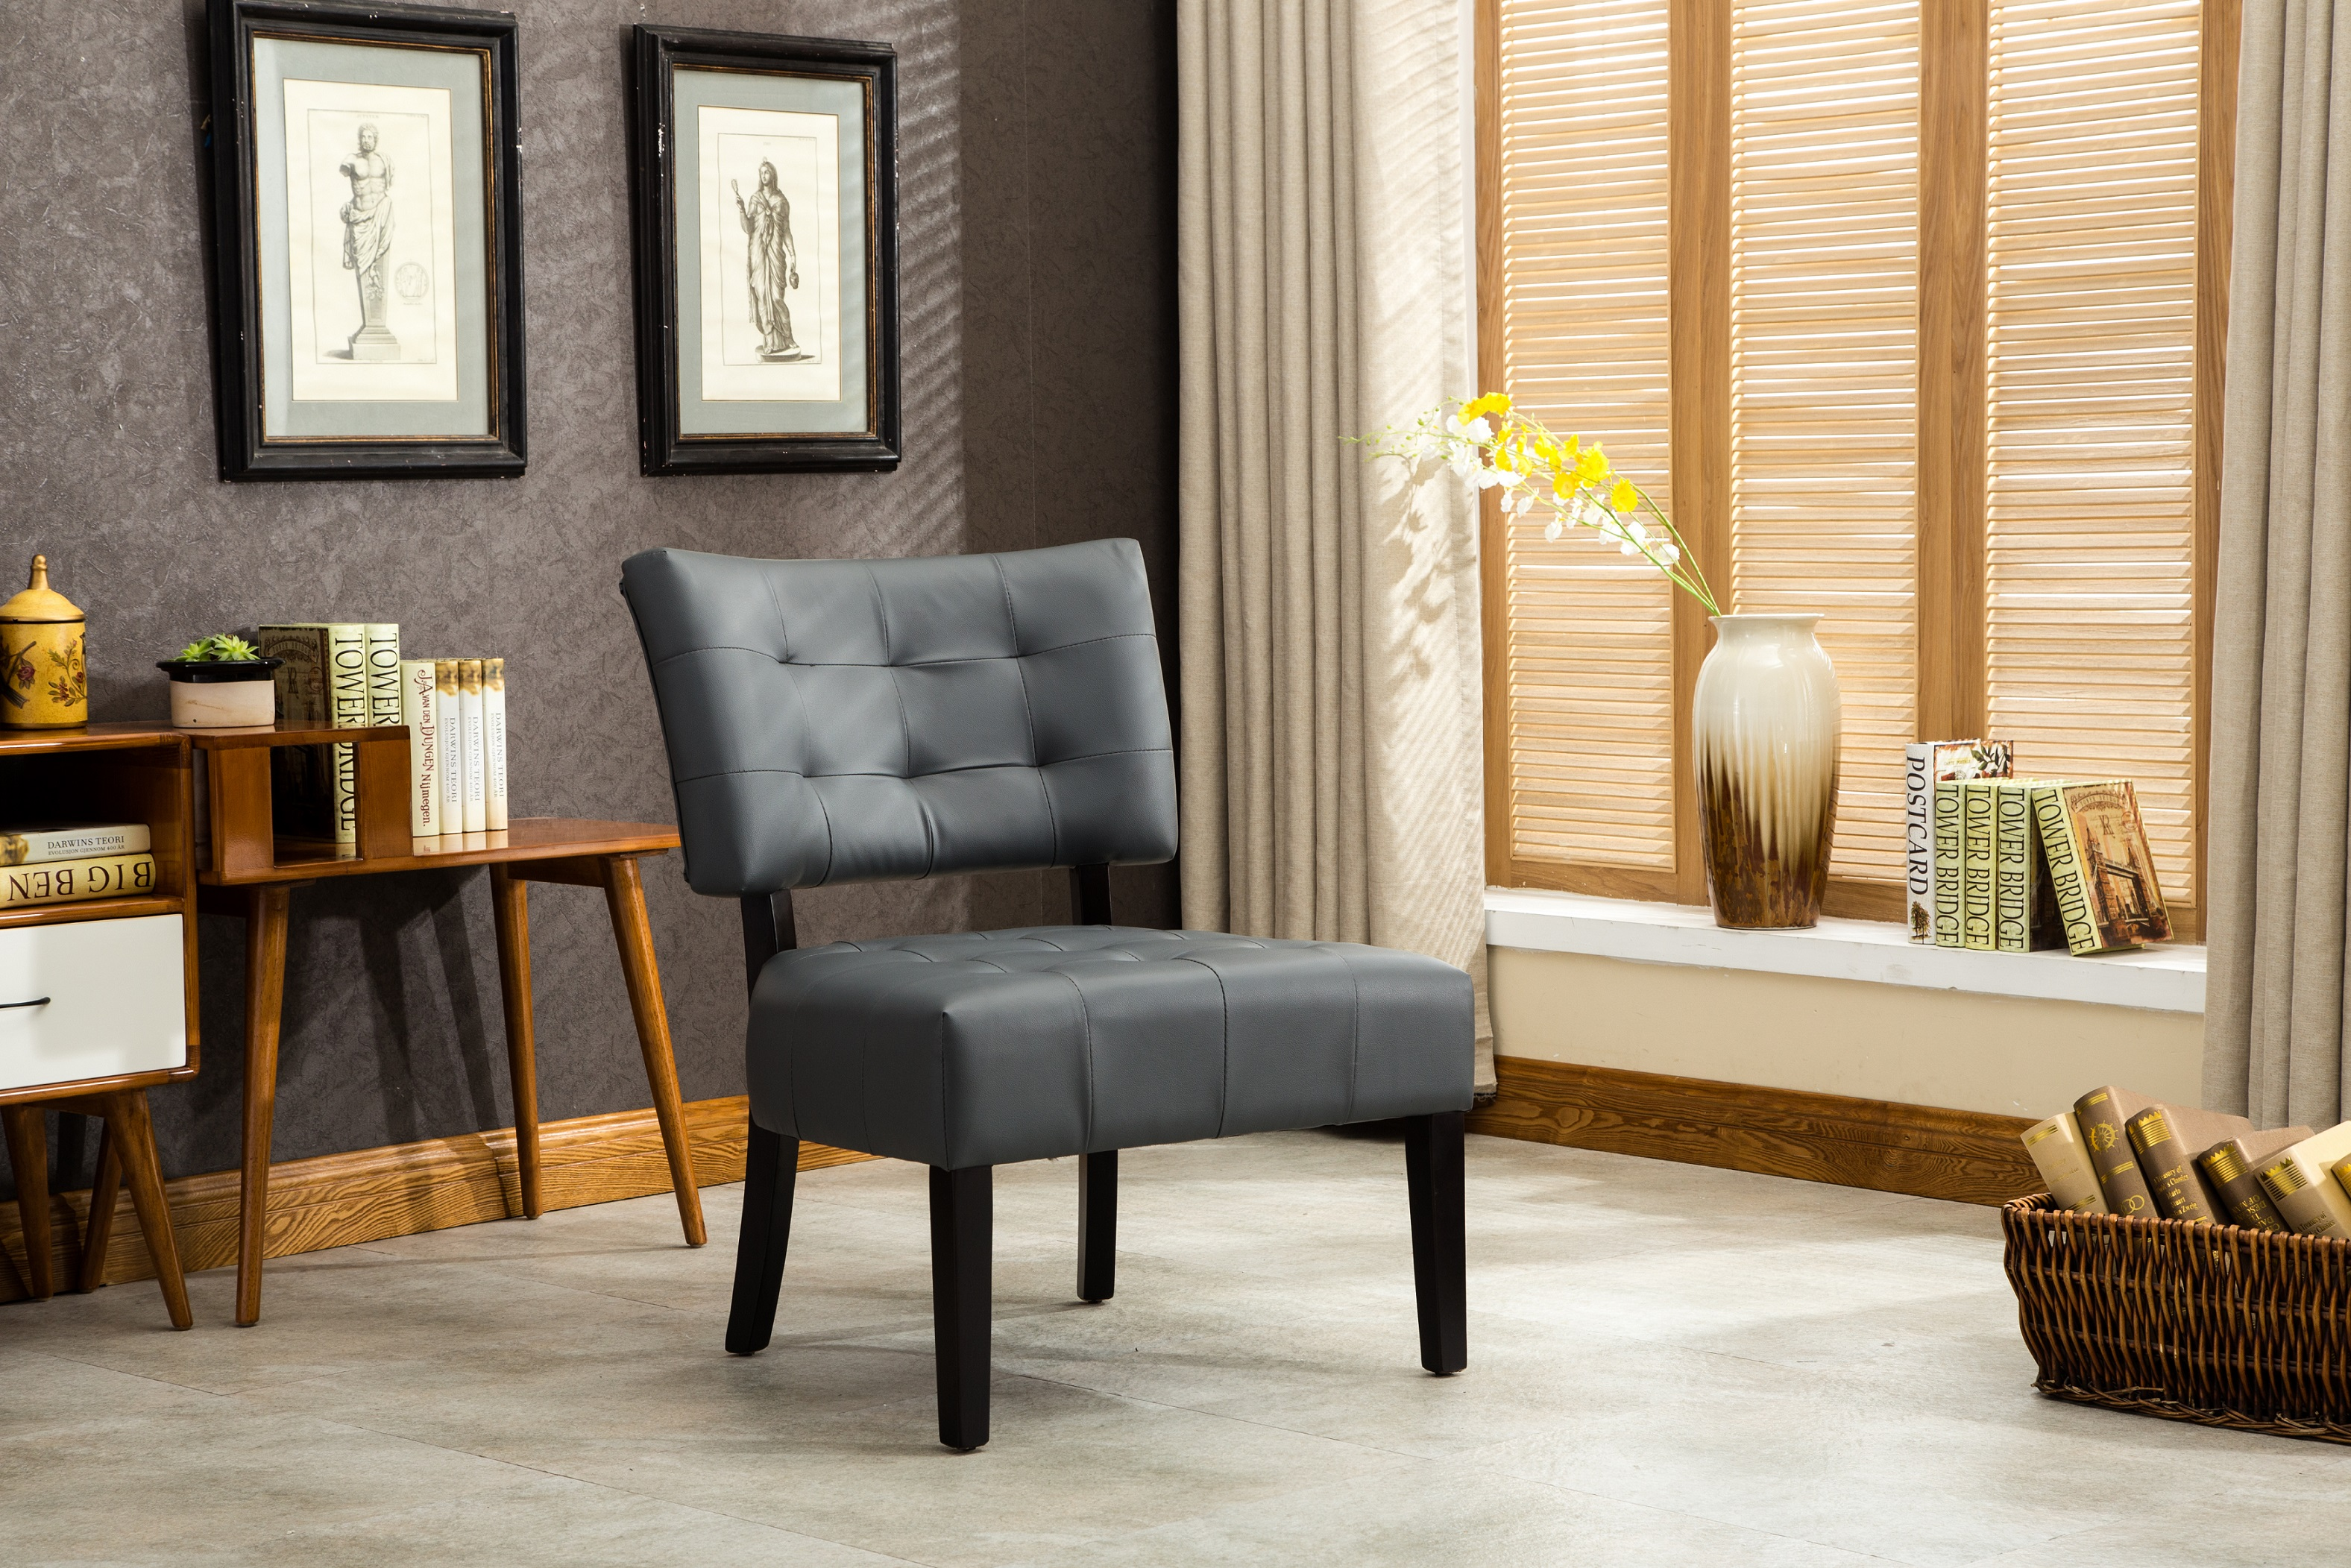 roundhill furniture wonda bonded leather accent chair with wood arms white spandex covers sash living room furnishings sears furnituremaxx ac002gy bally blended grey tufted oversized seating